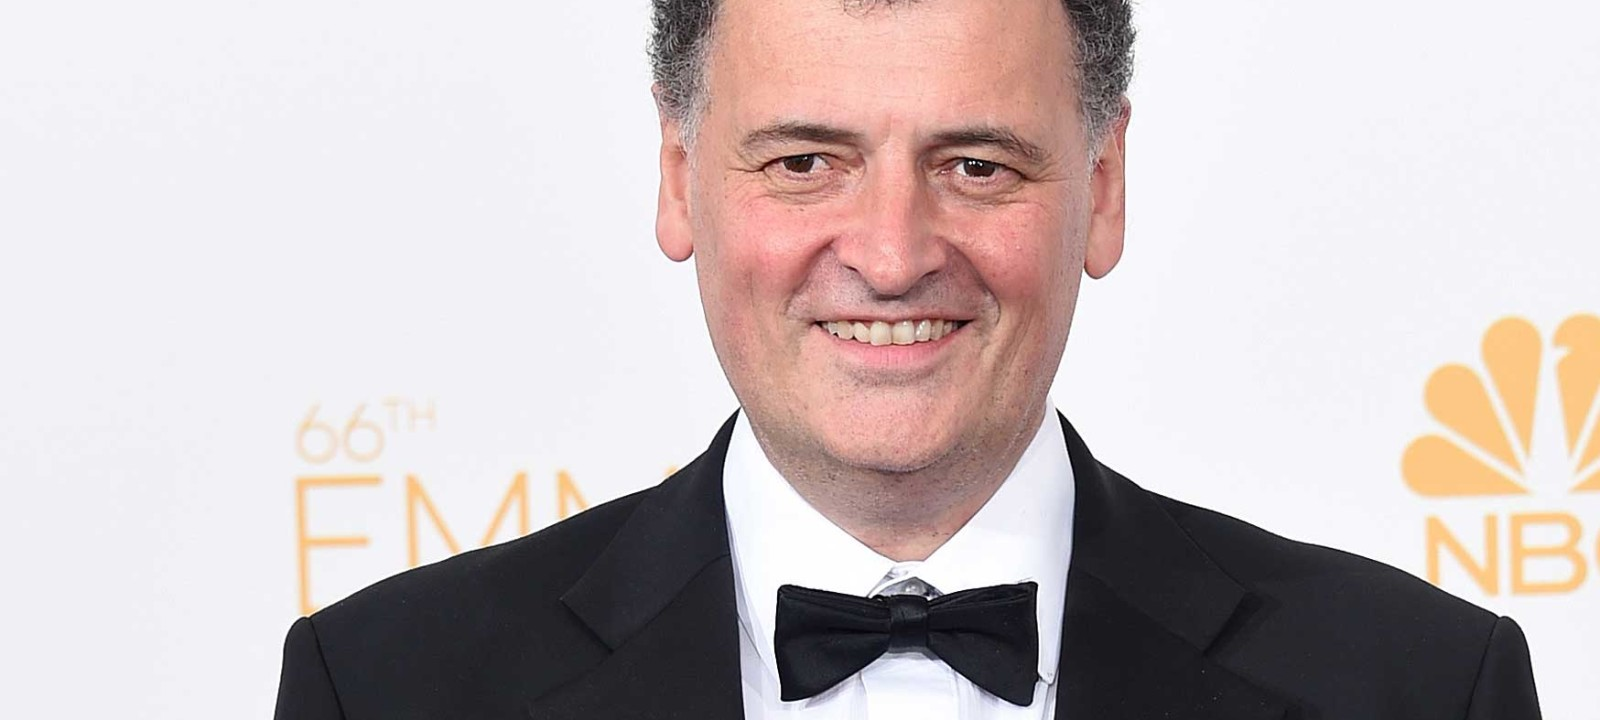 Steven Moffat (Photo: Jason Merritt / Getty Images)